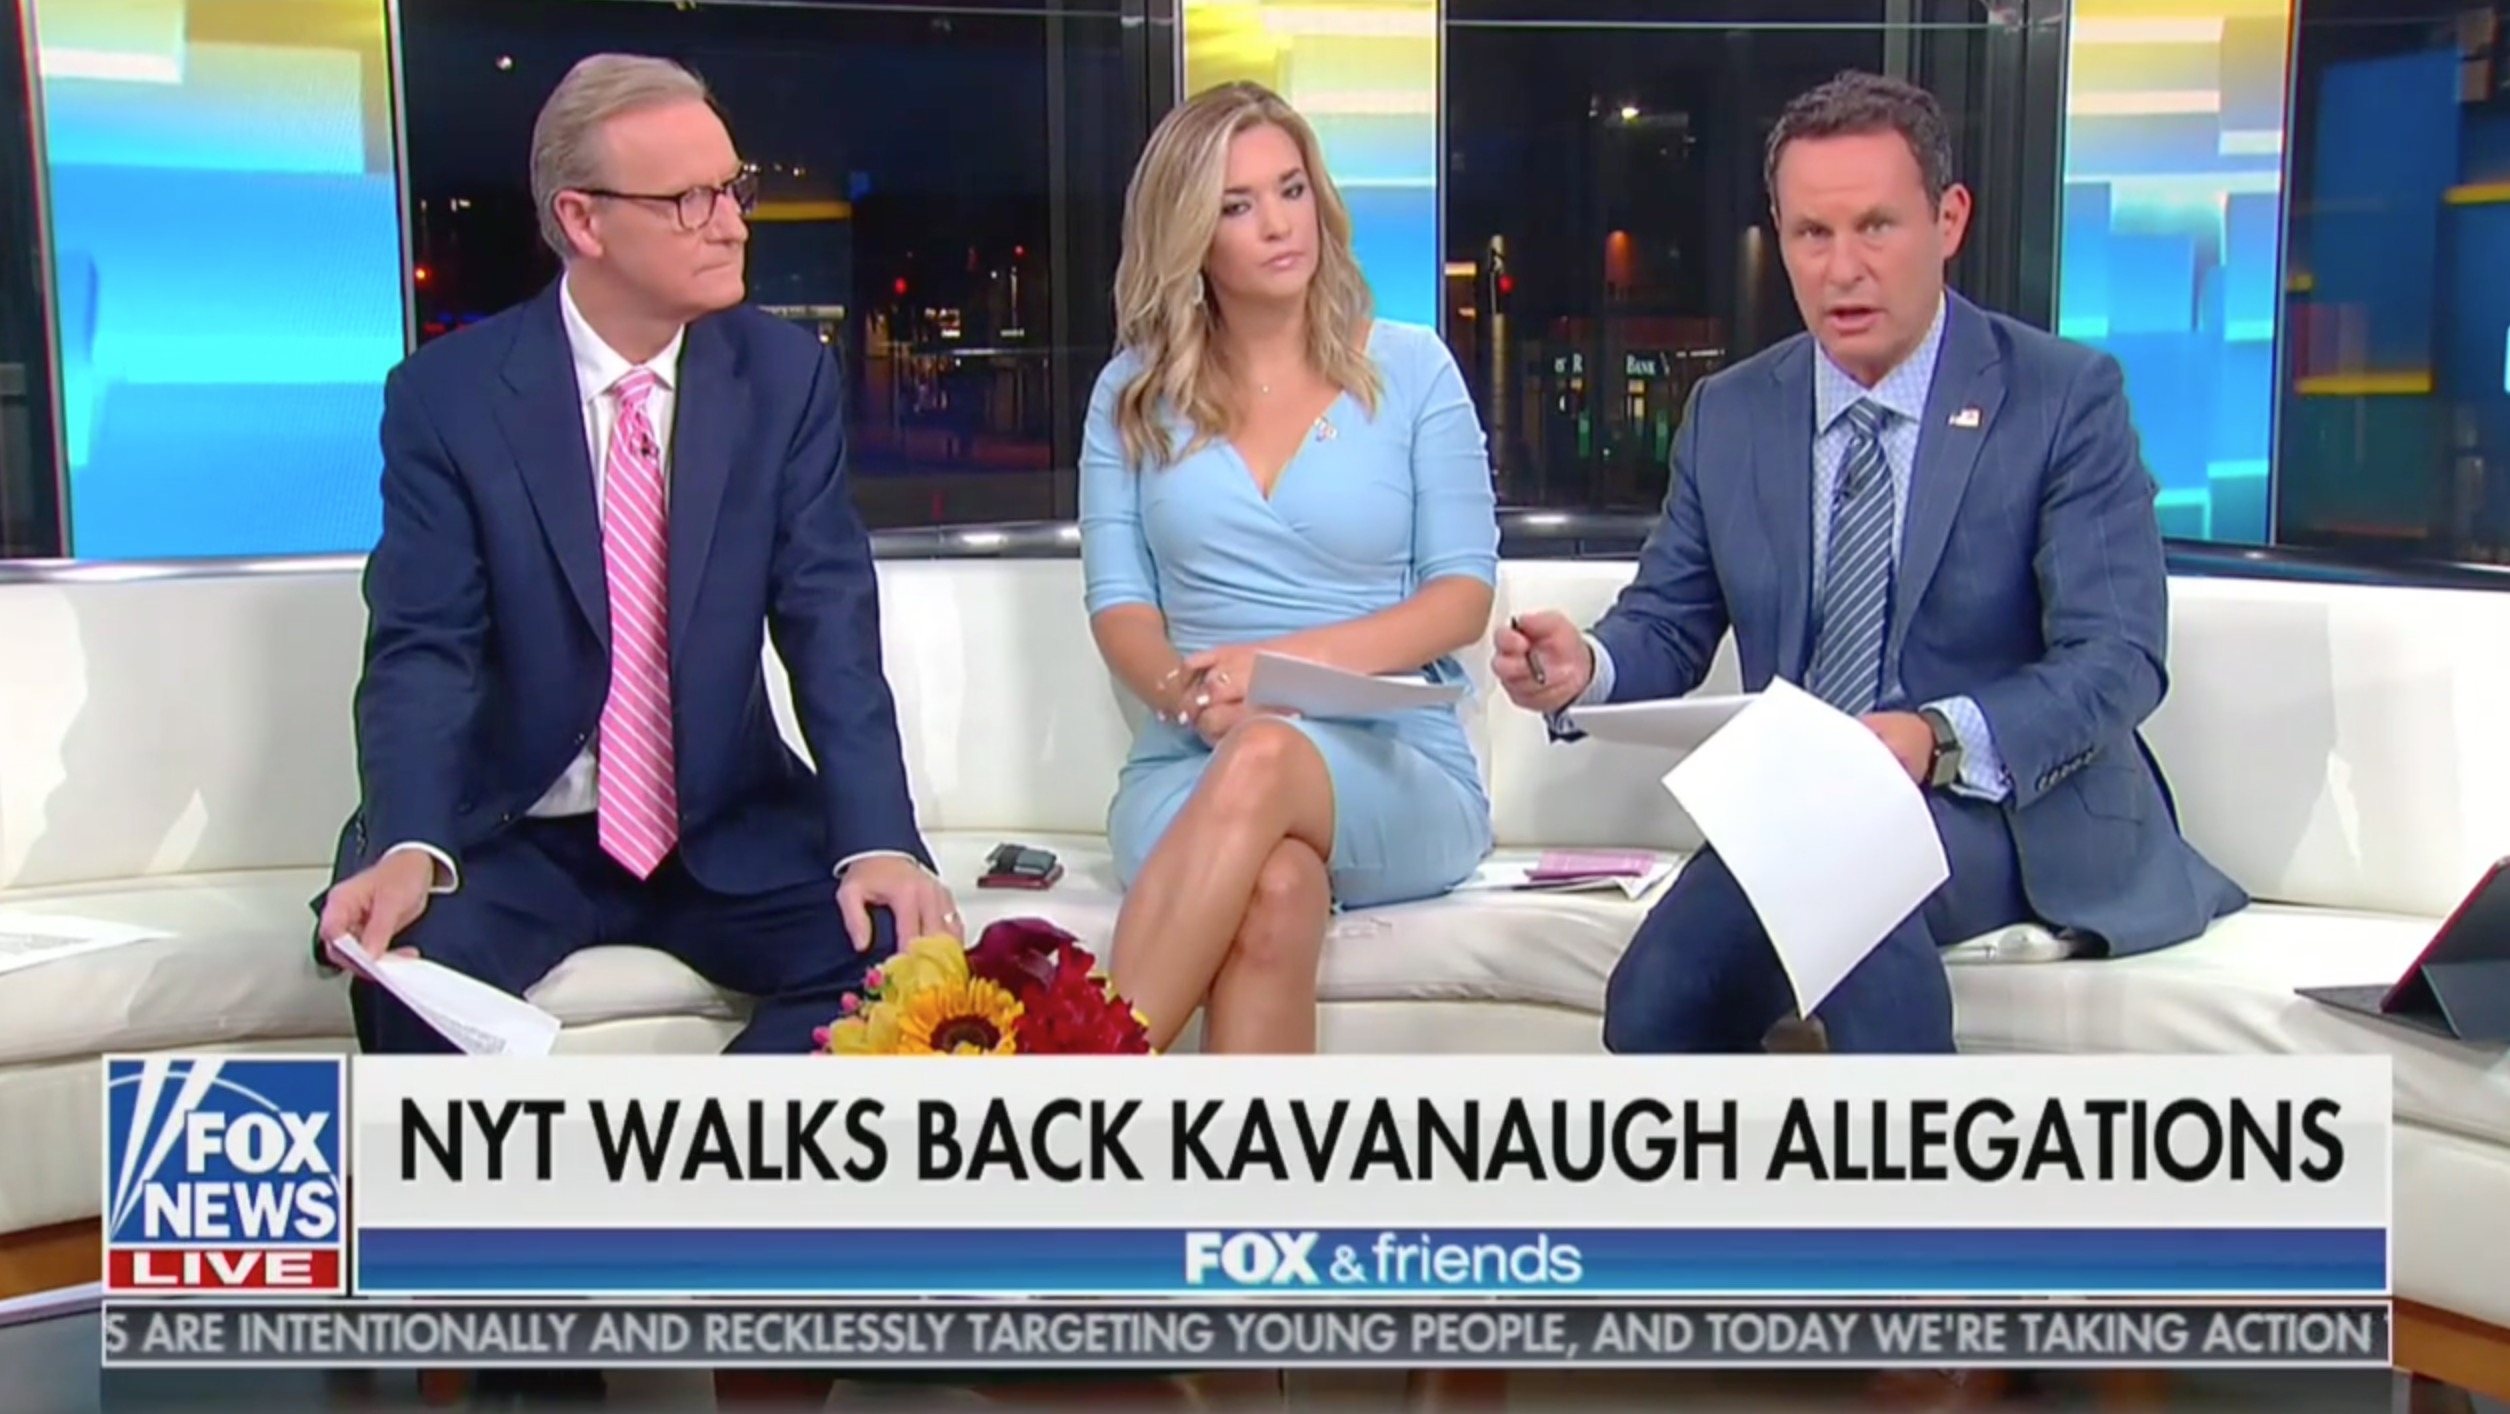 Fox & Friends Rip New York Times Over Kavanaugh Walk Back: 'Facts Don't Add Up'